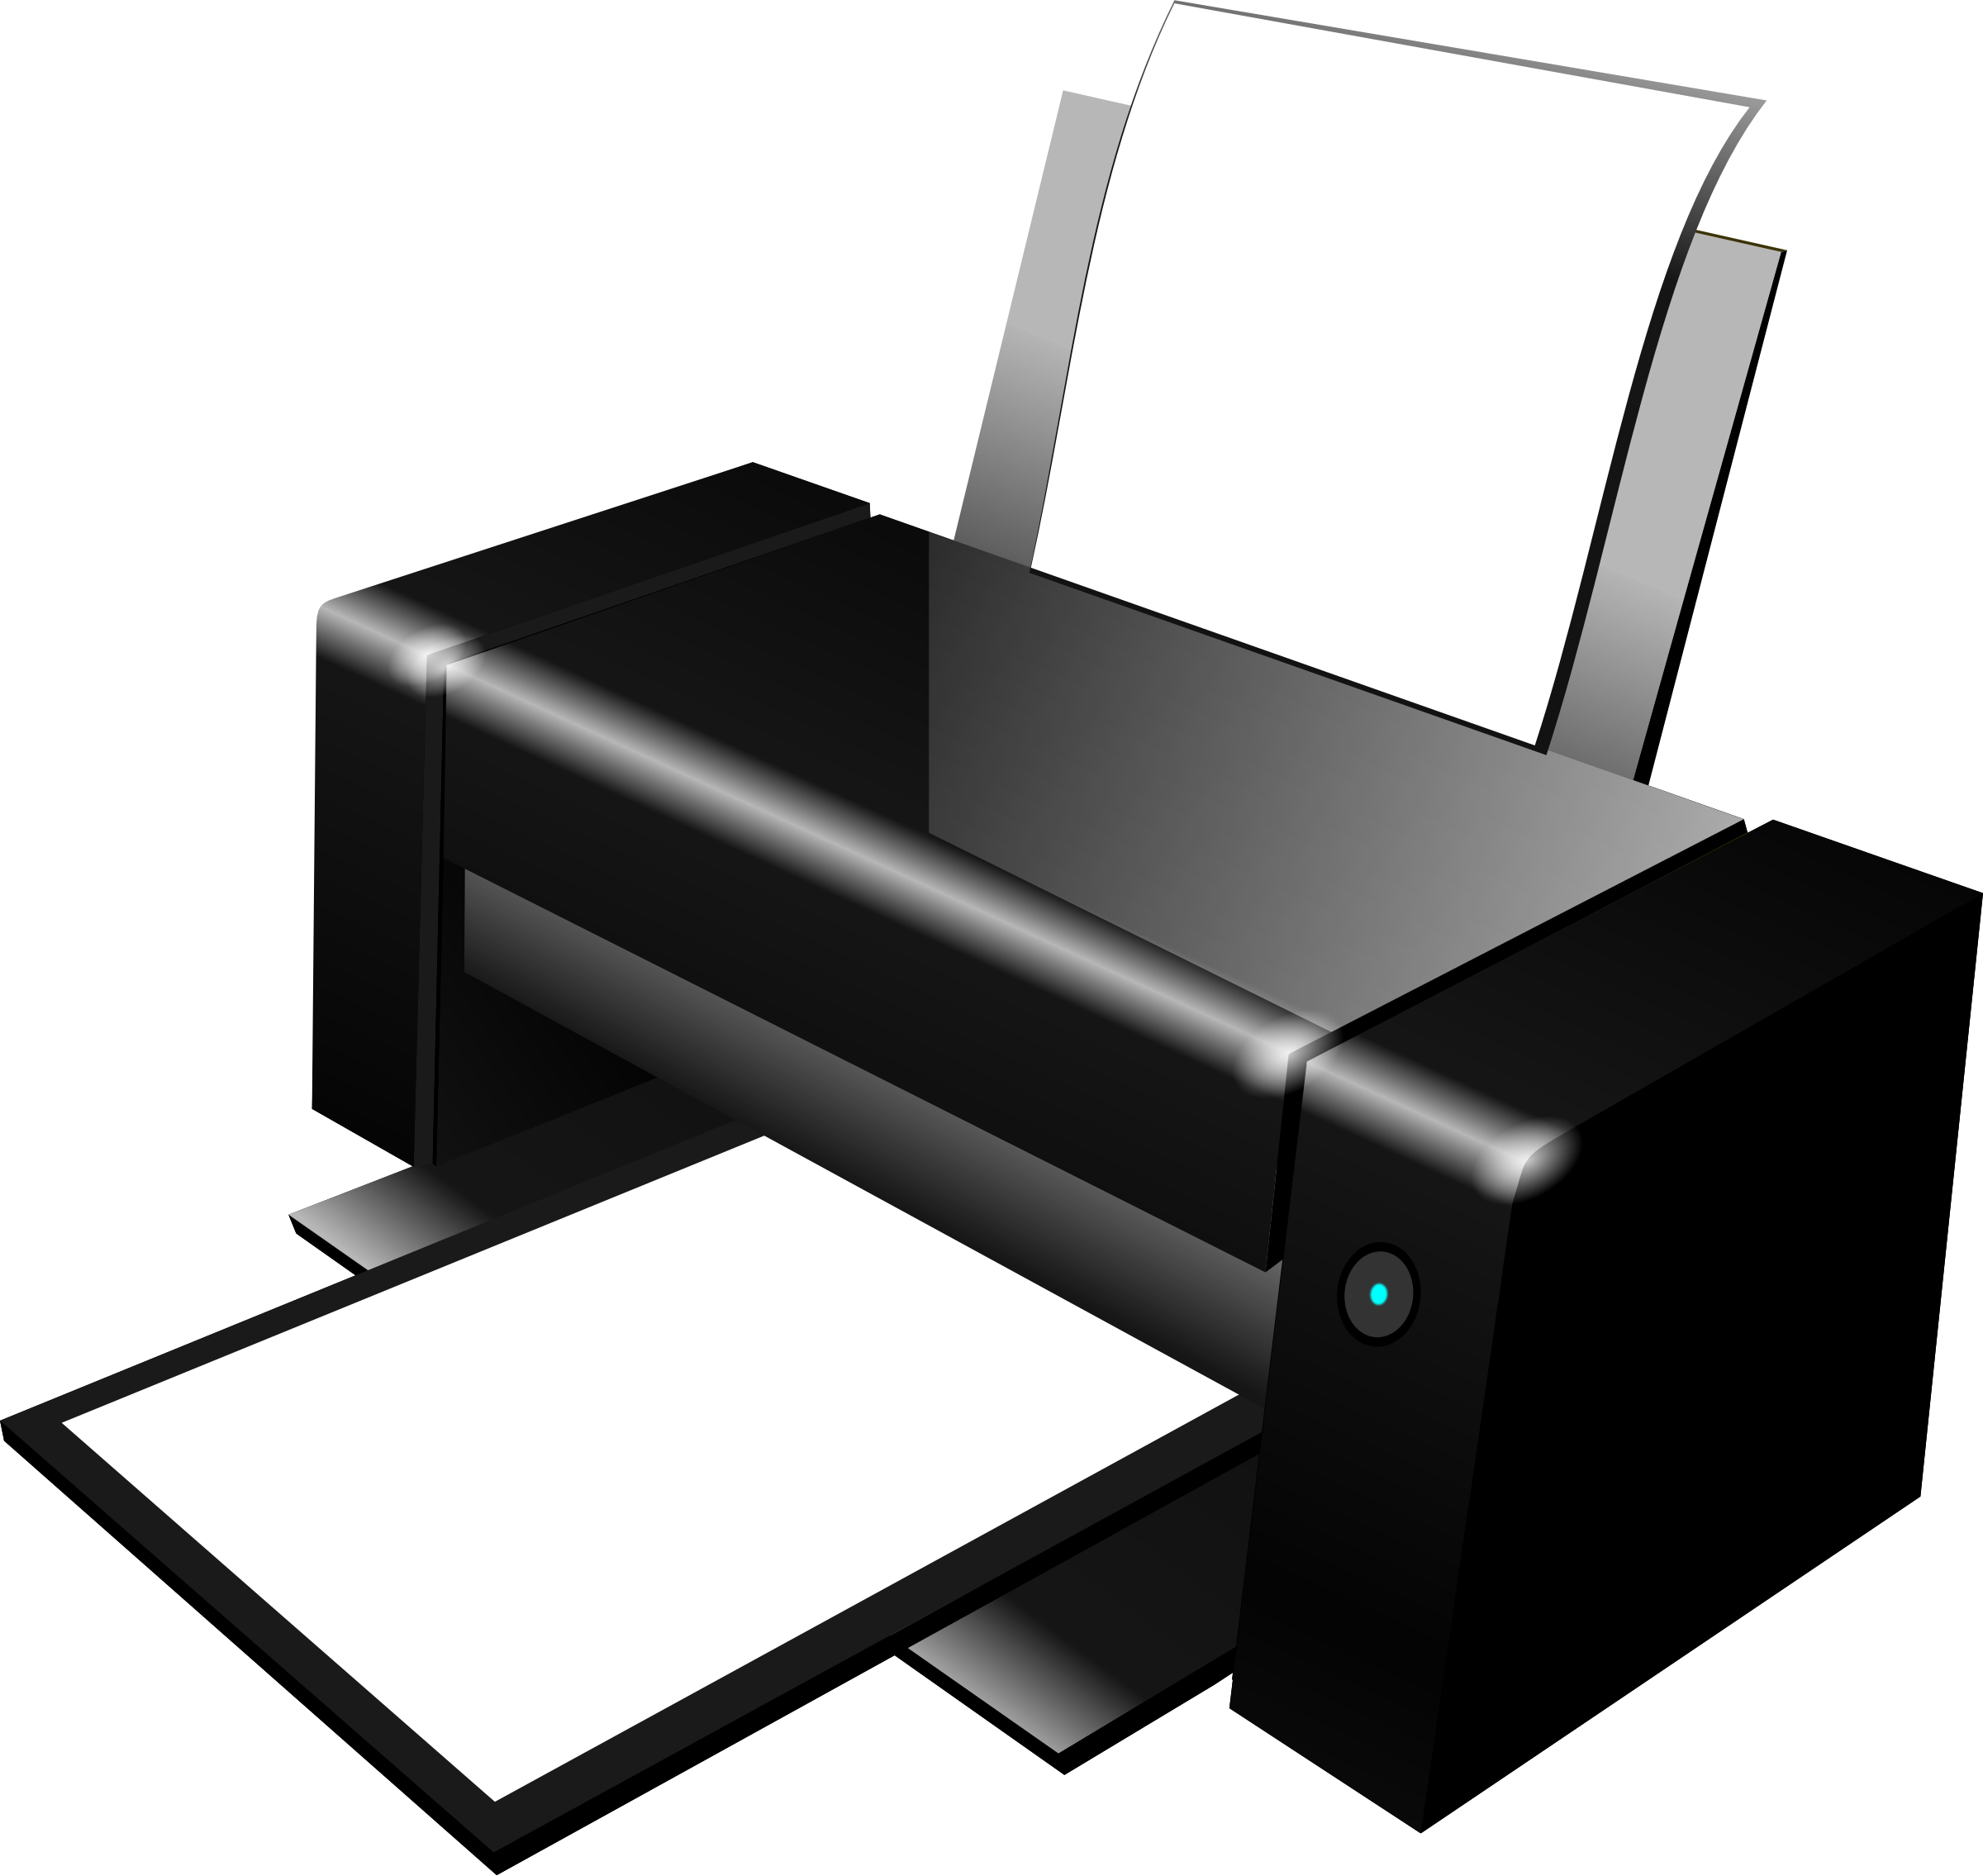 Printer 09 Clipart Printer 09